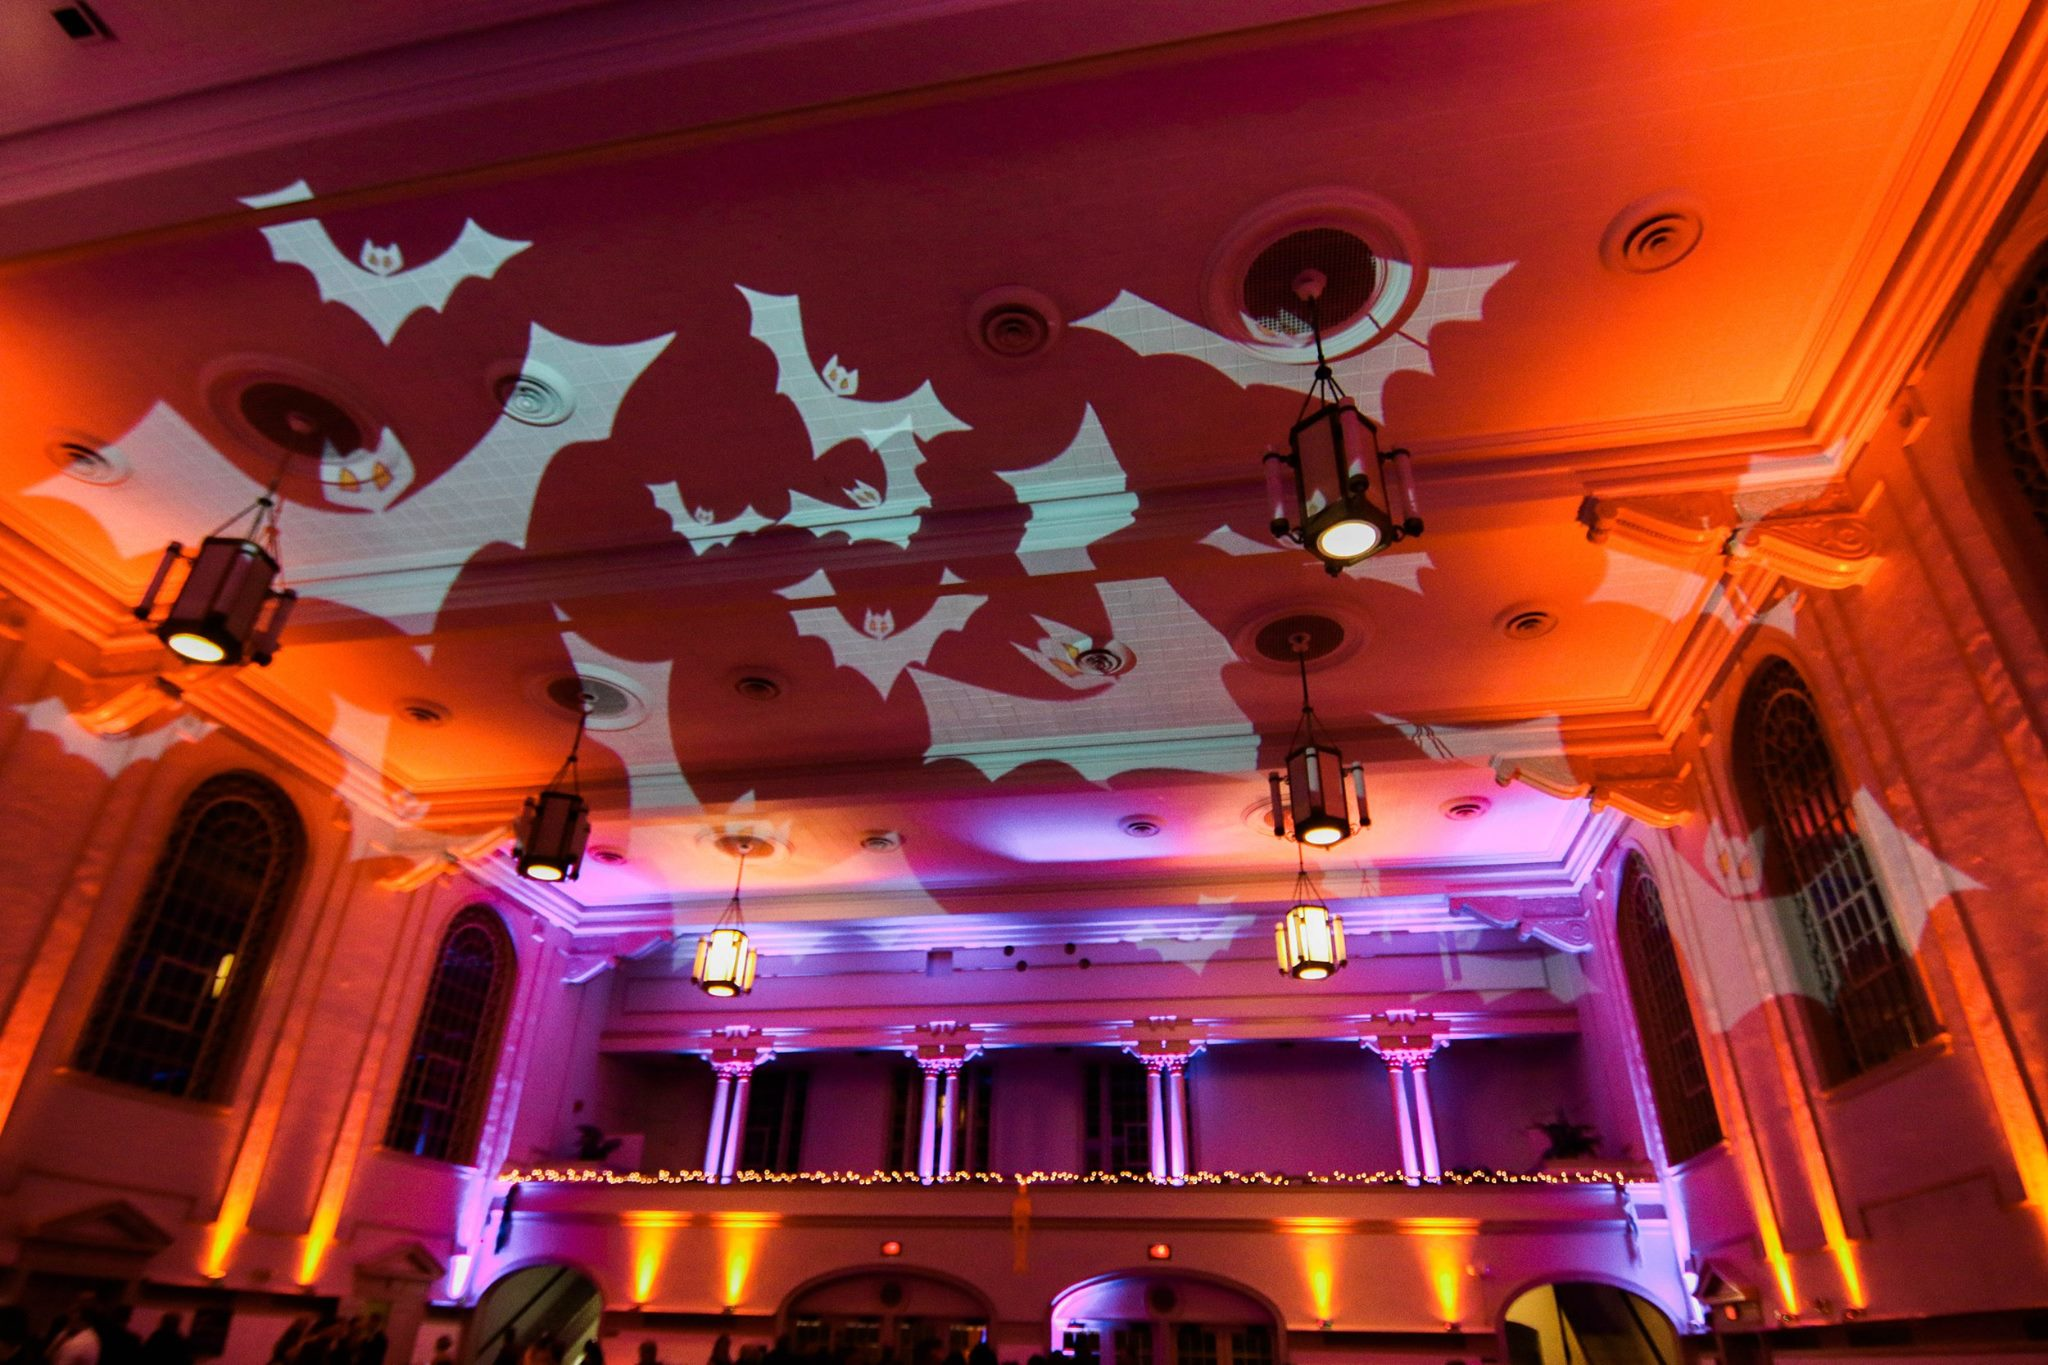 Harro East Uplighting Halloween Wedding www.tmpdj.com